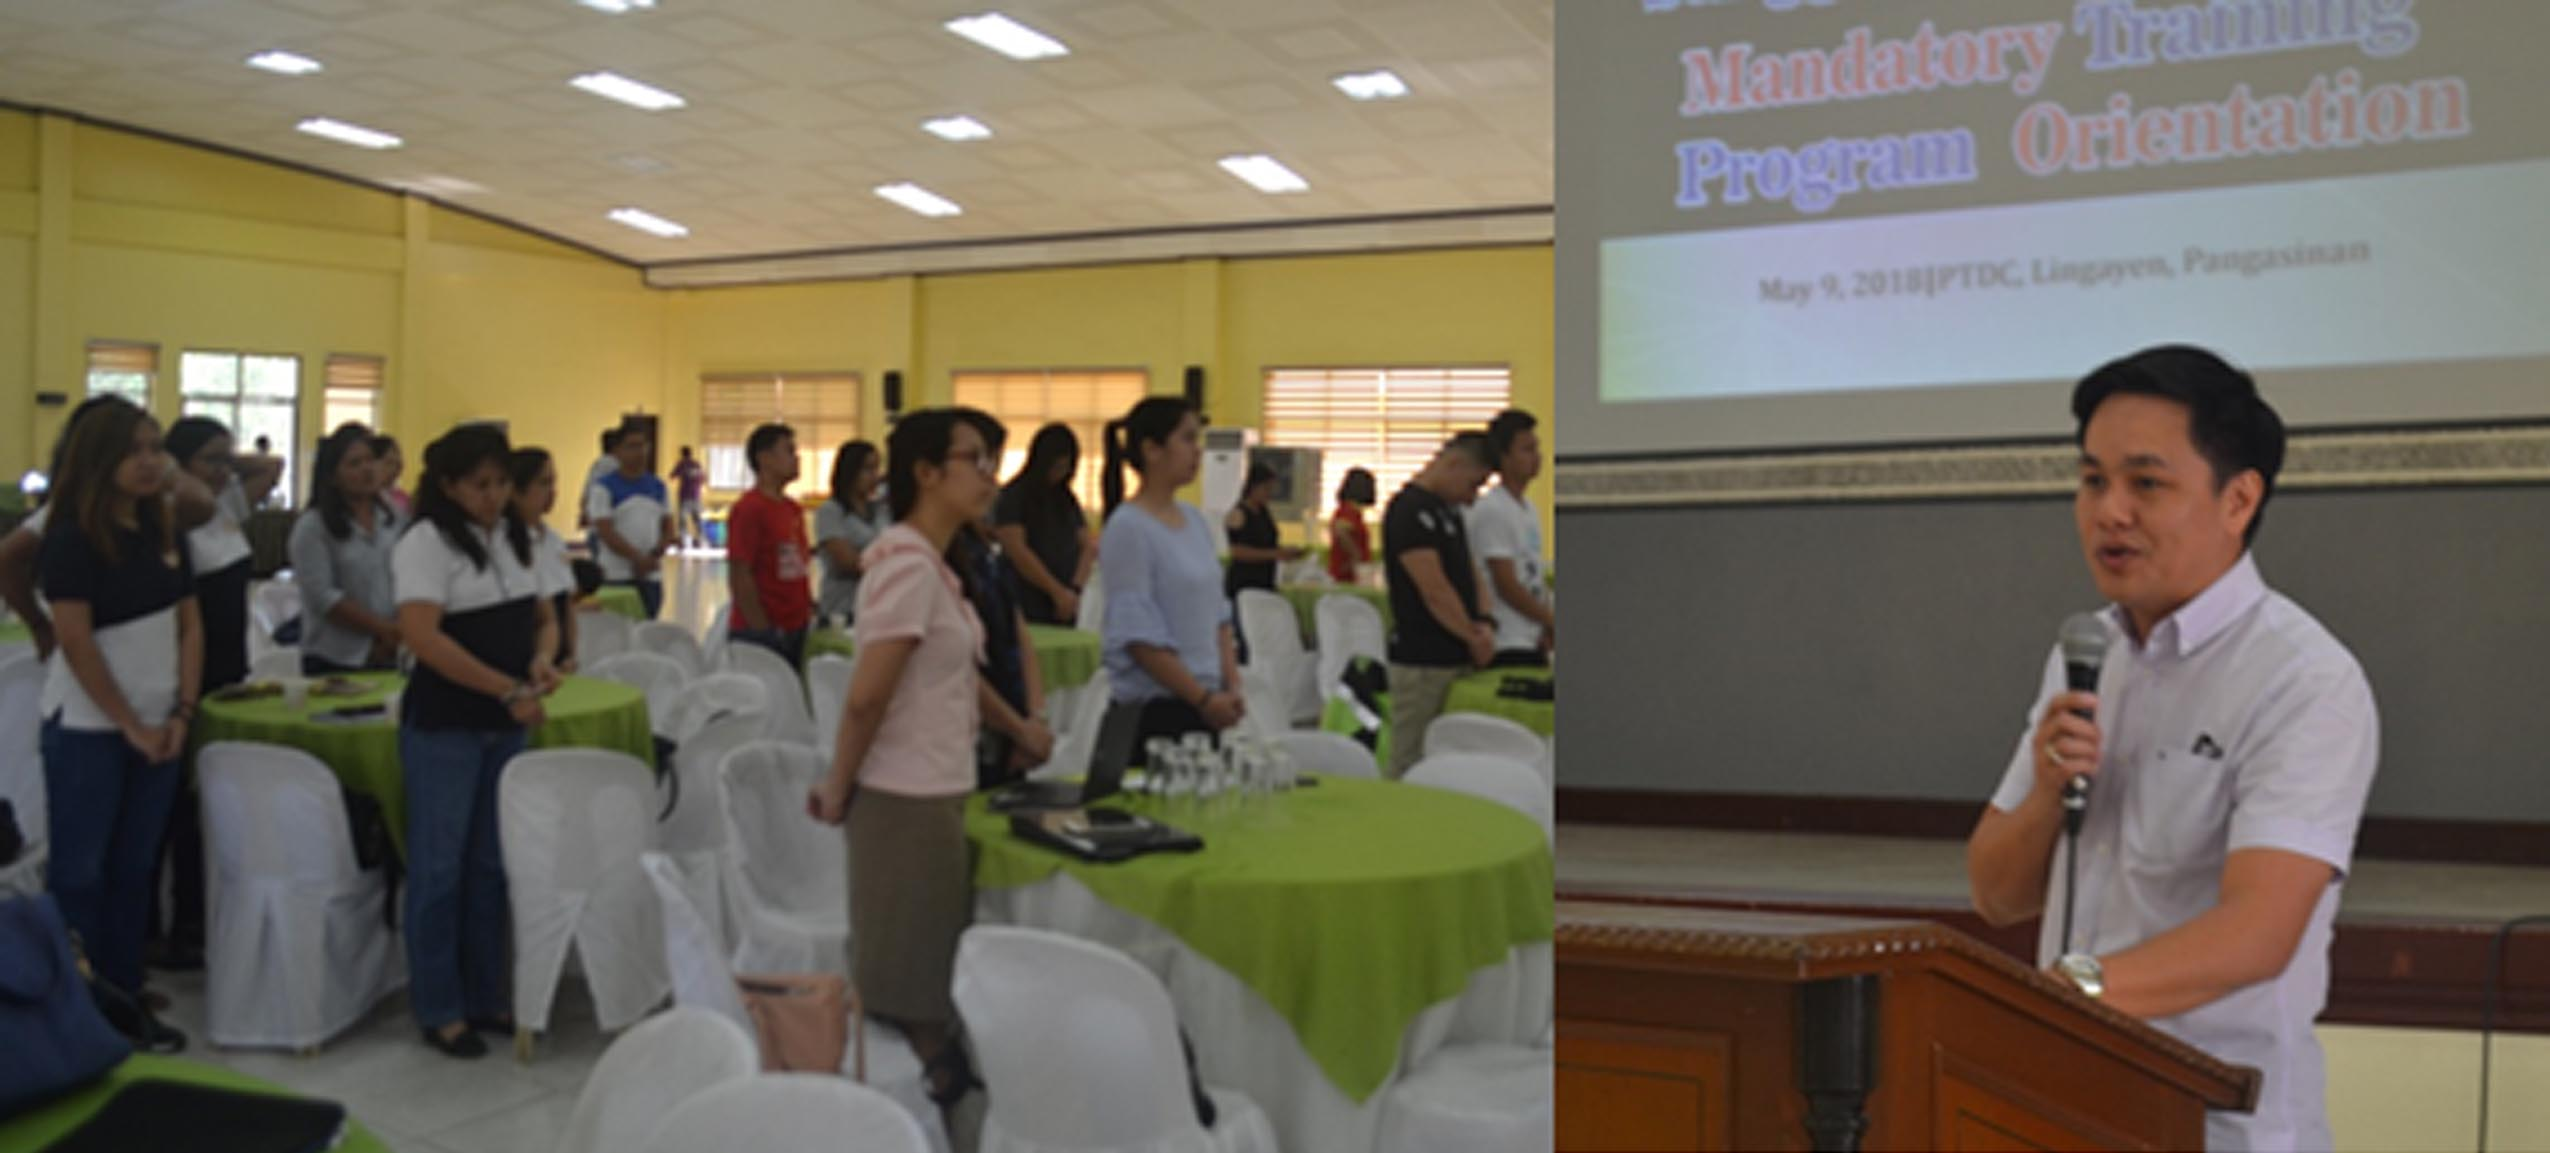 PA CAMBA WELCOMES PARTICIPANTS OF MANDATORY SK TRAINING